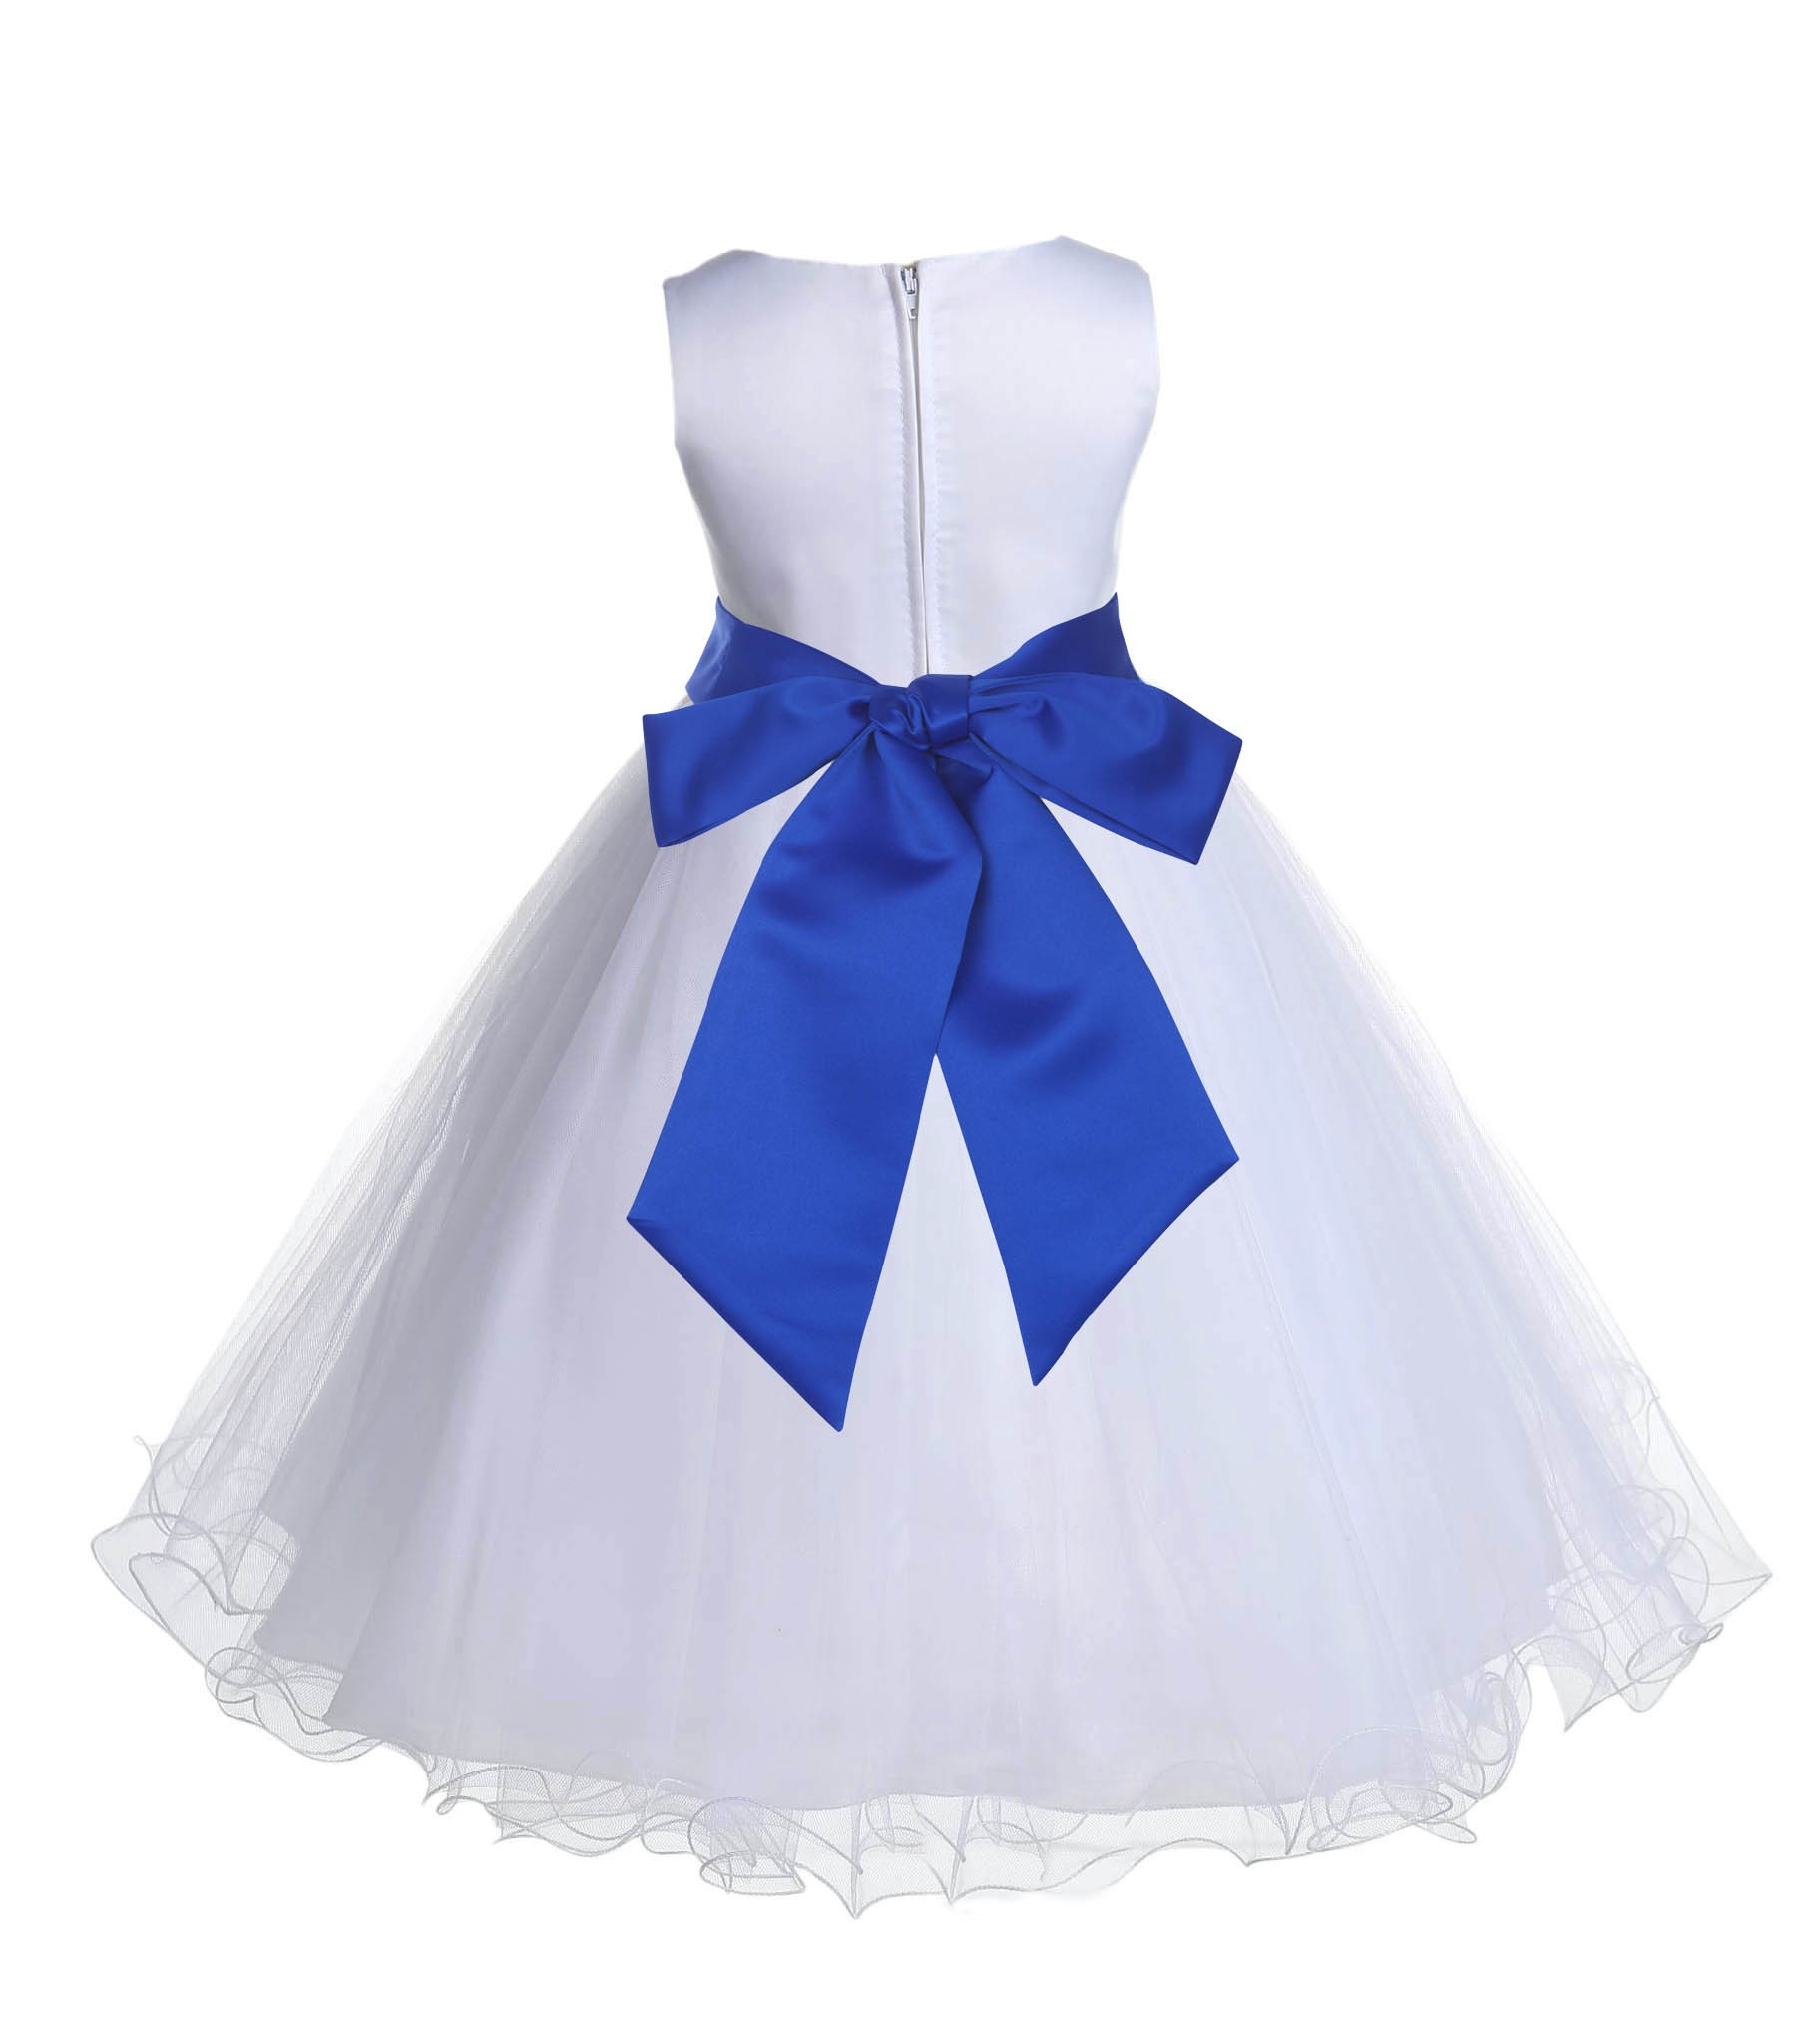 3fbf98a2b2b White Horizon Tulle Rattail Edge Flower Girl Dress Wedding Bridal 829S